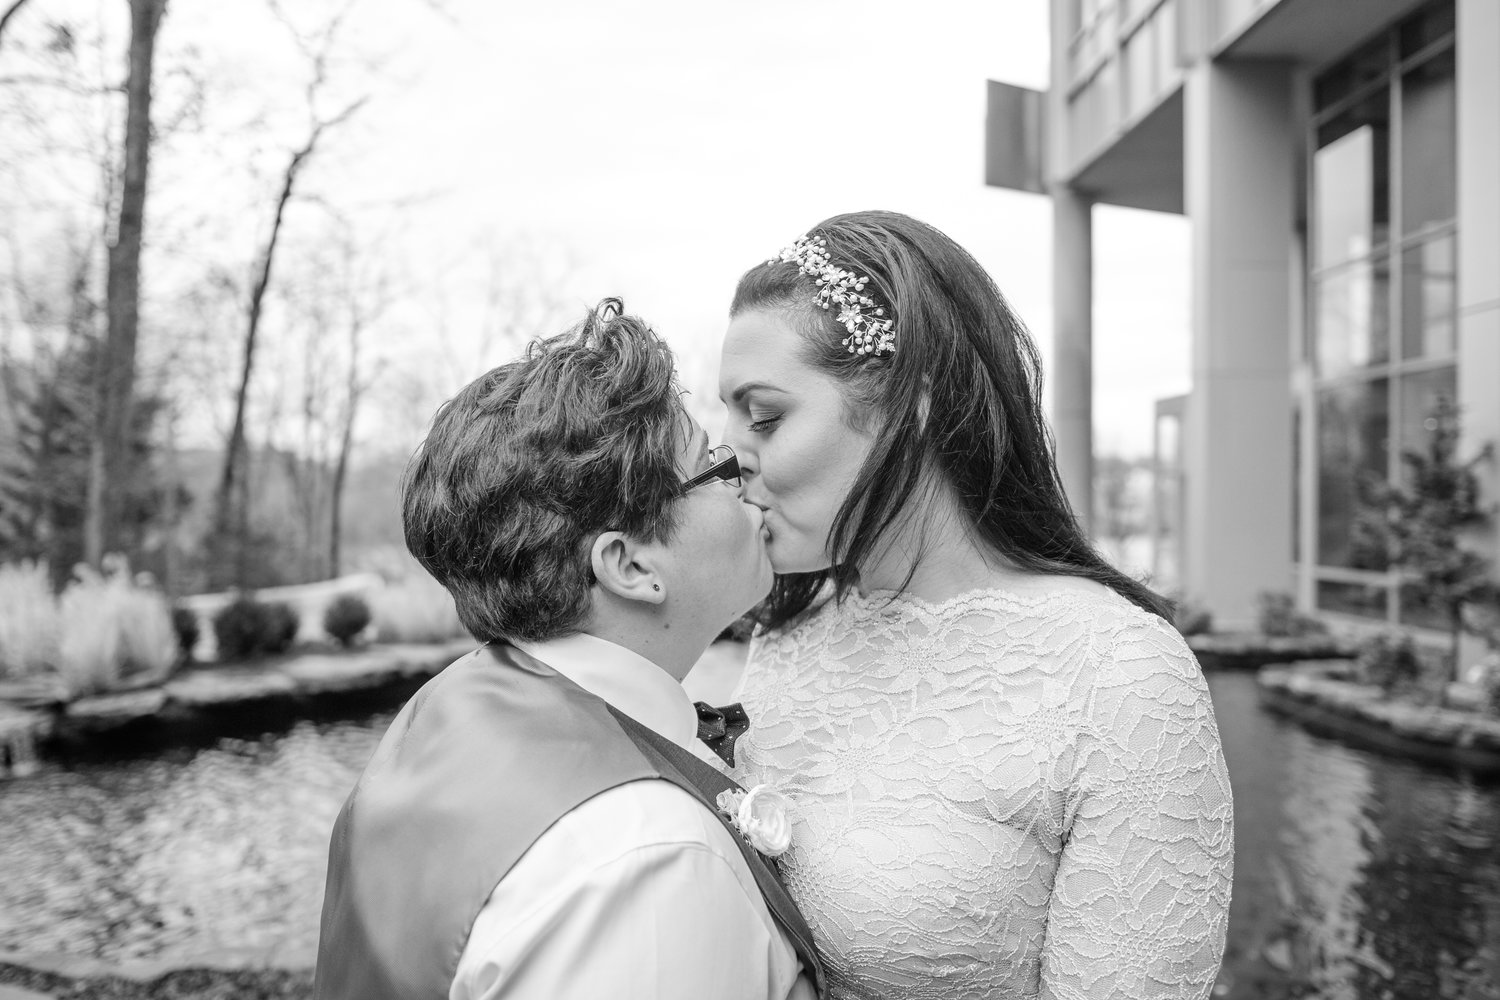 jenn and bek | 2941 restaurant wedding | falls church, virginia